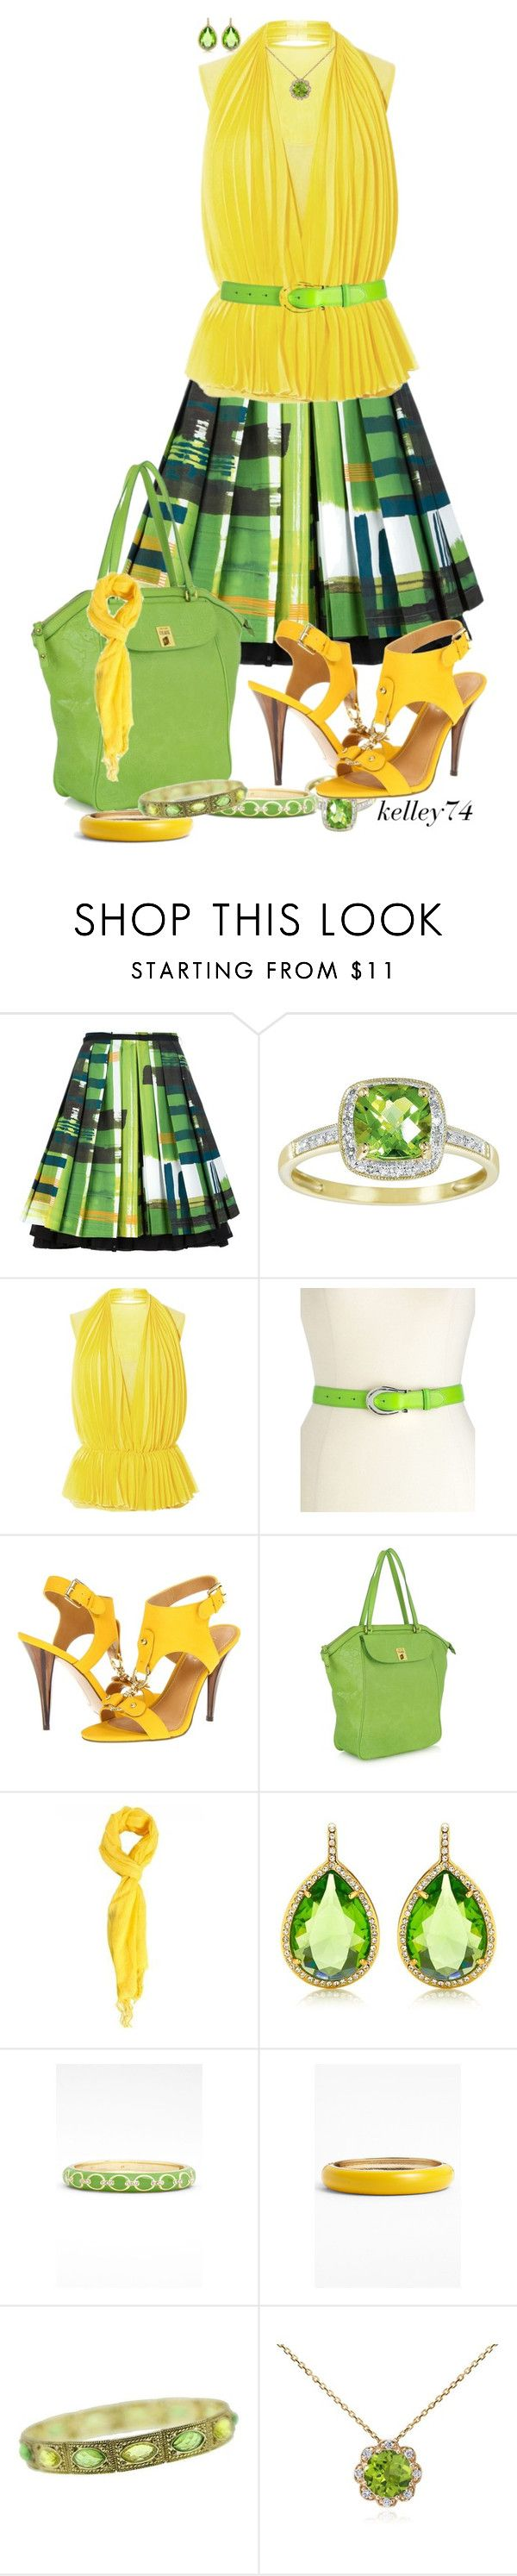 """""""Lemon-Lime"""" by kelley74 ❤ liked on Polyvore featuring Eggs, Lauren Ralph Lauren, Nine West, Alviero Martini 1° Classe, Juicy Couture, Sequin, 1928 and Blue Nile"""